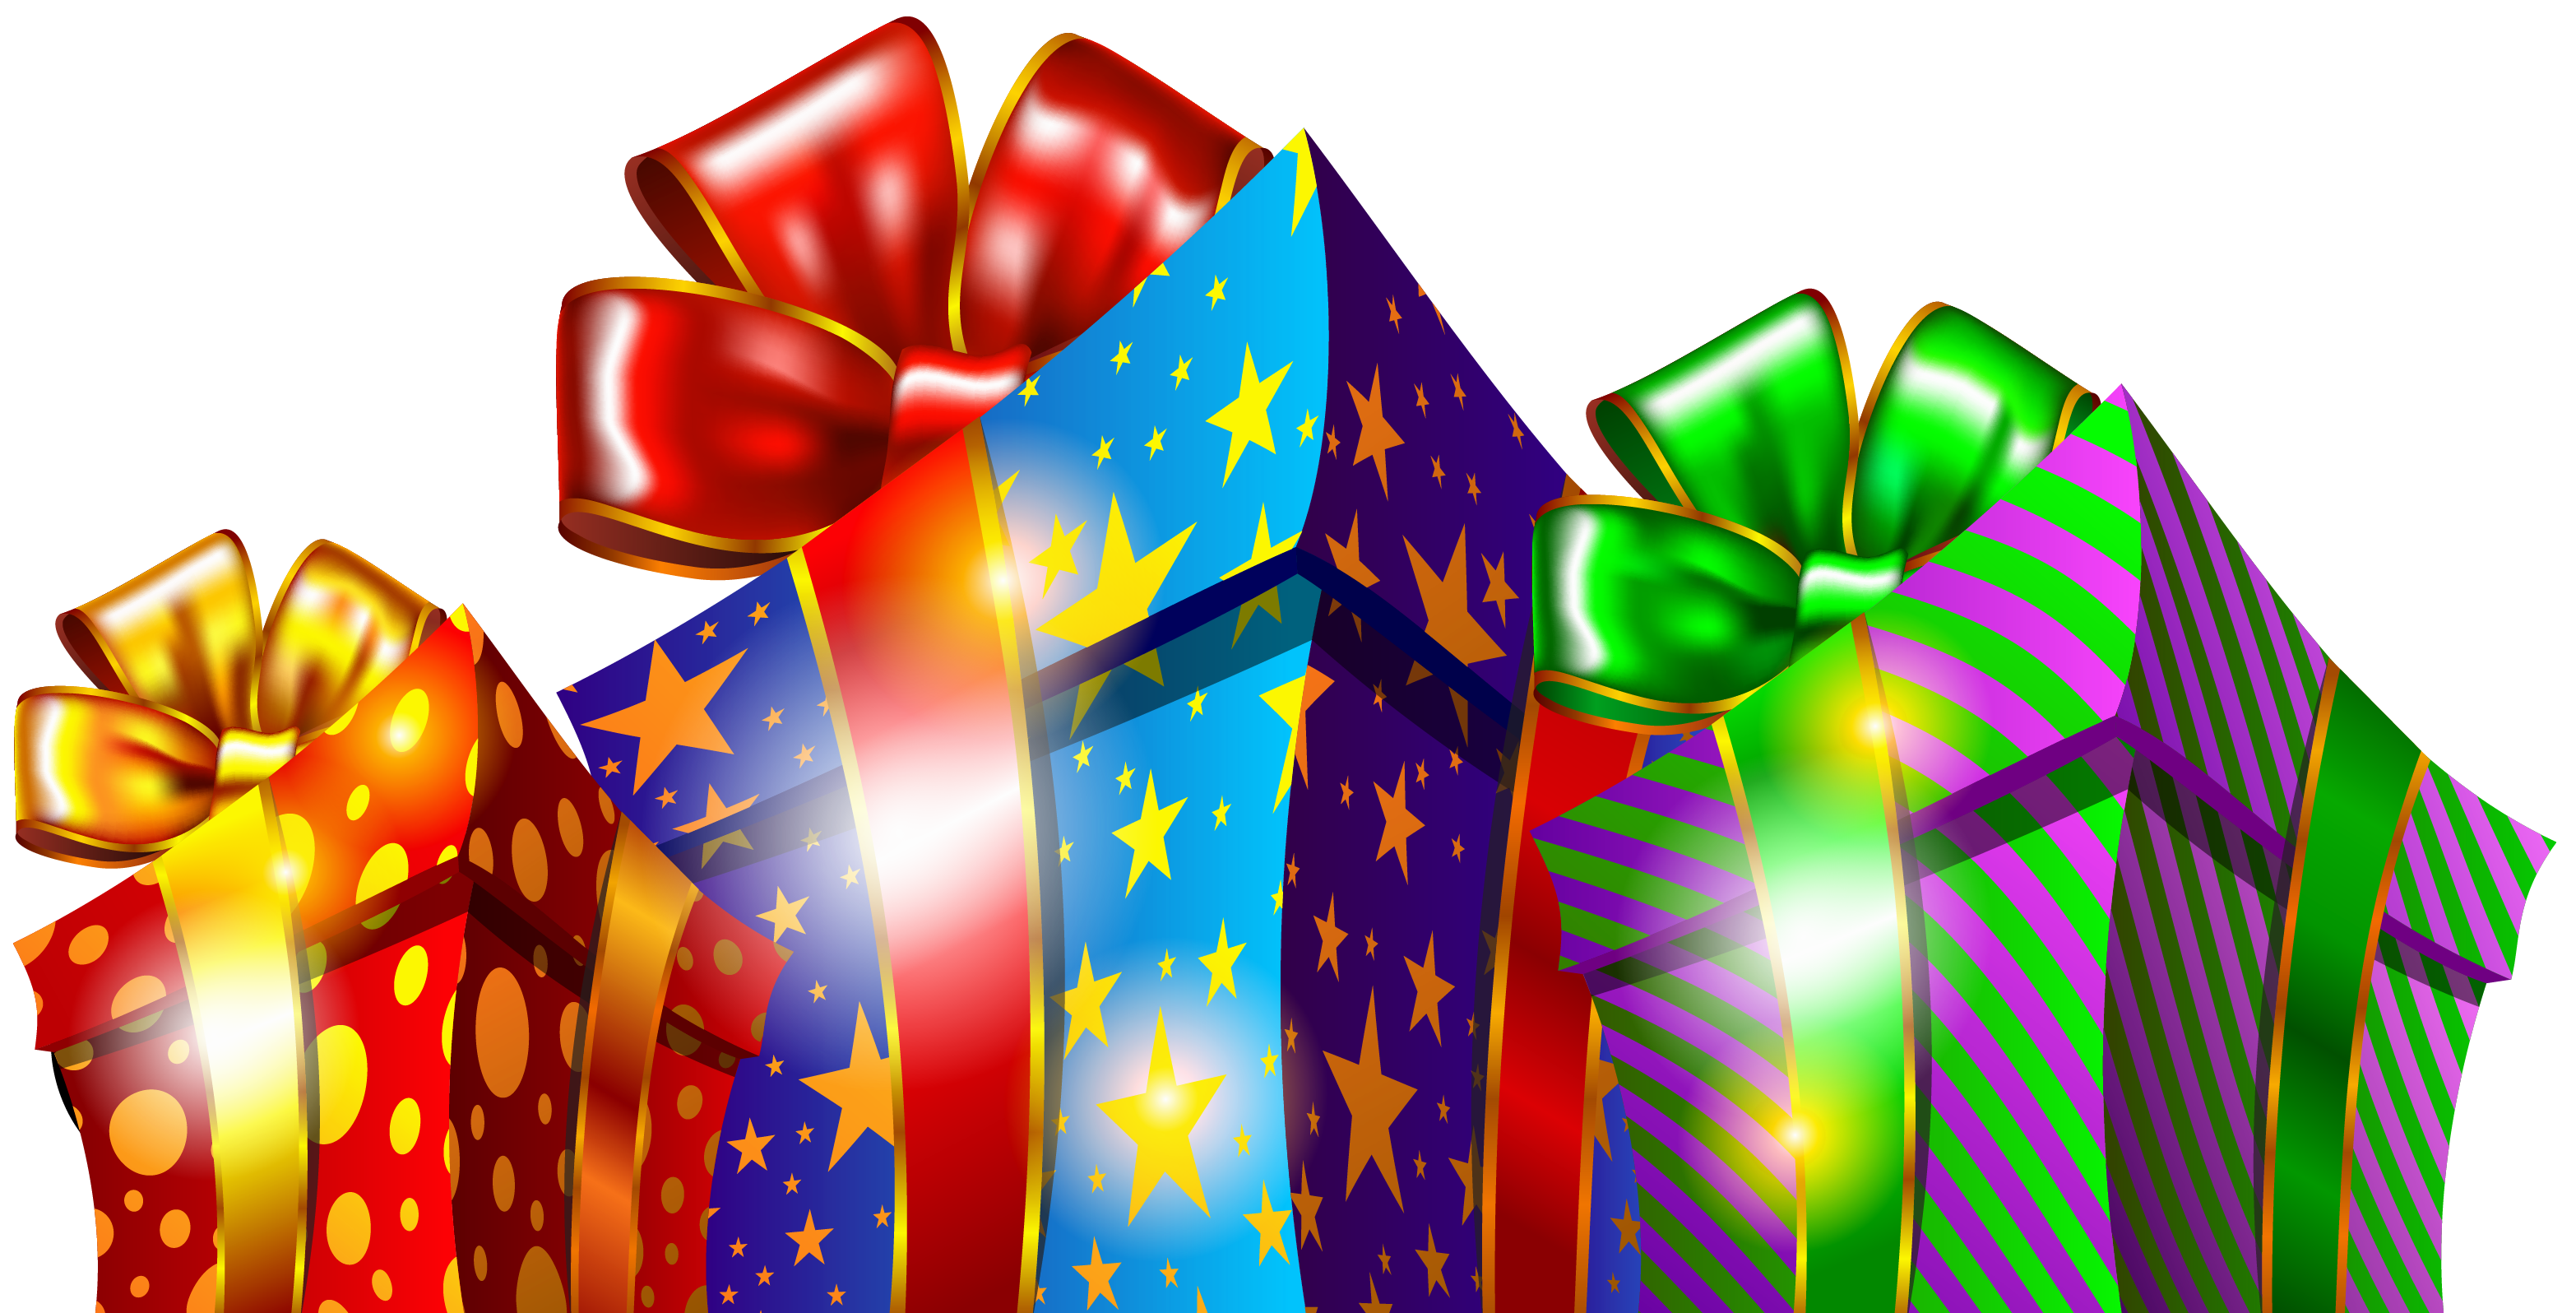 Gift clipart chrismas presents. Christmas boxes png gallery